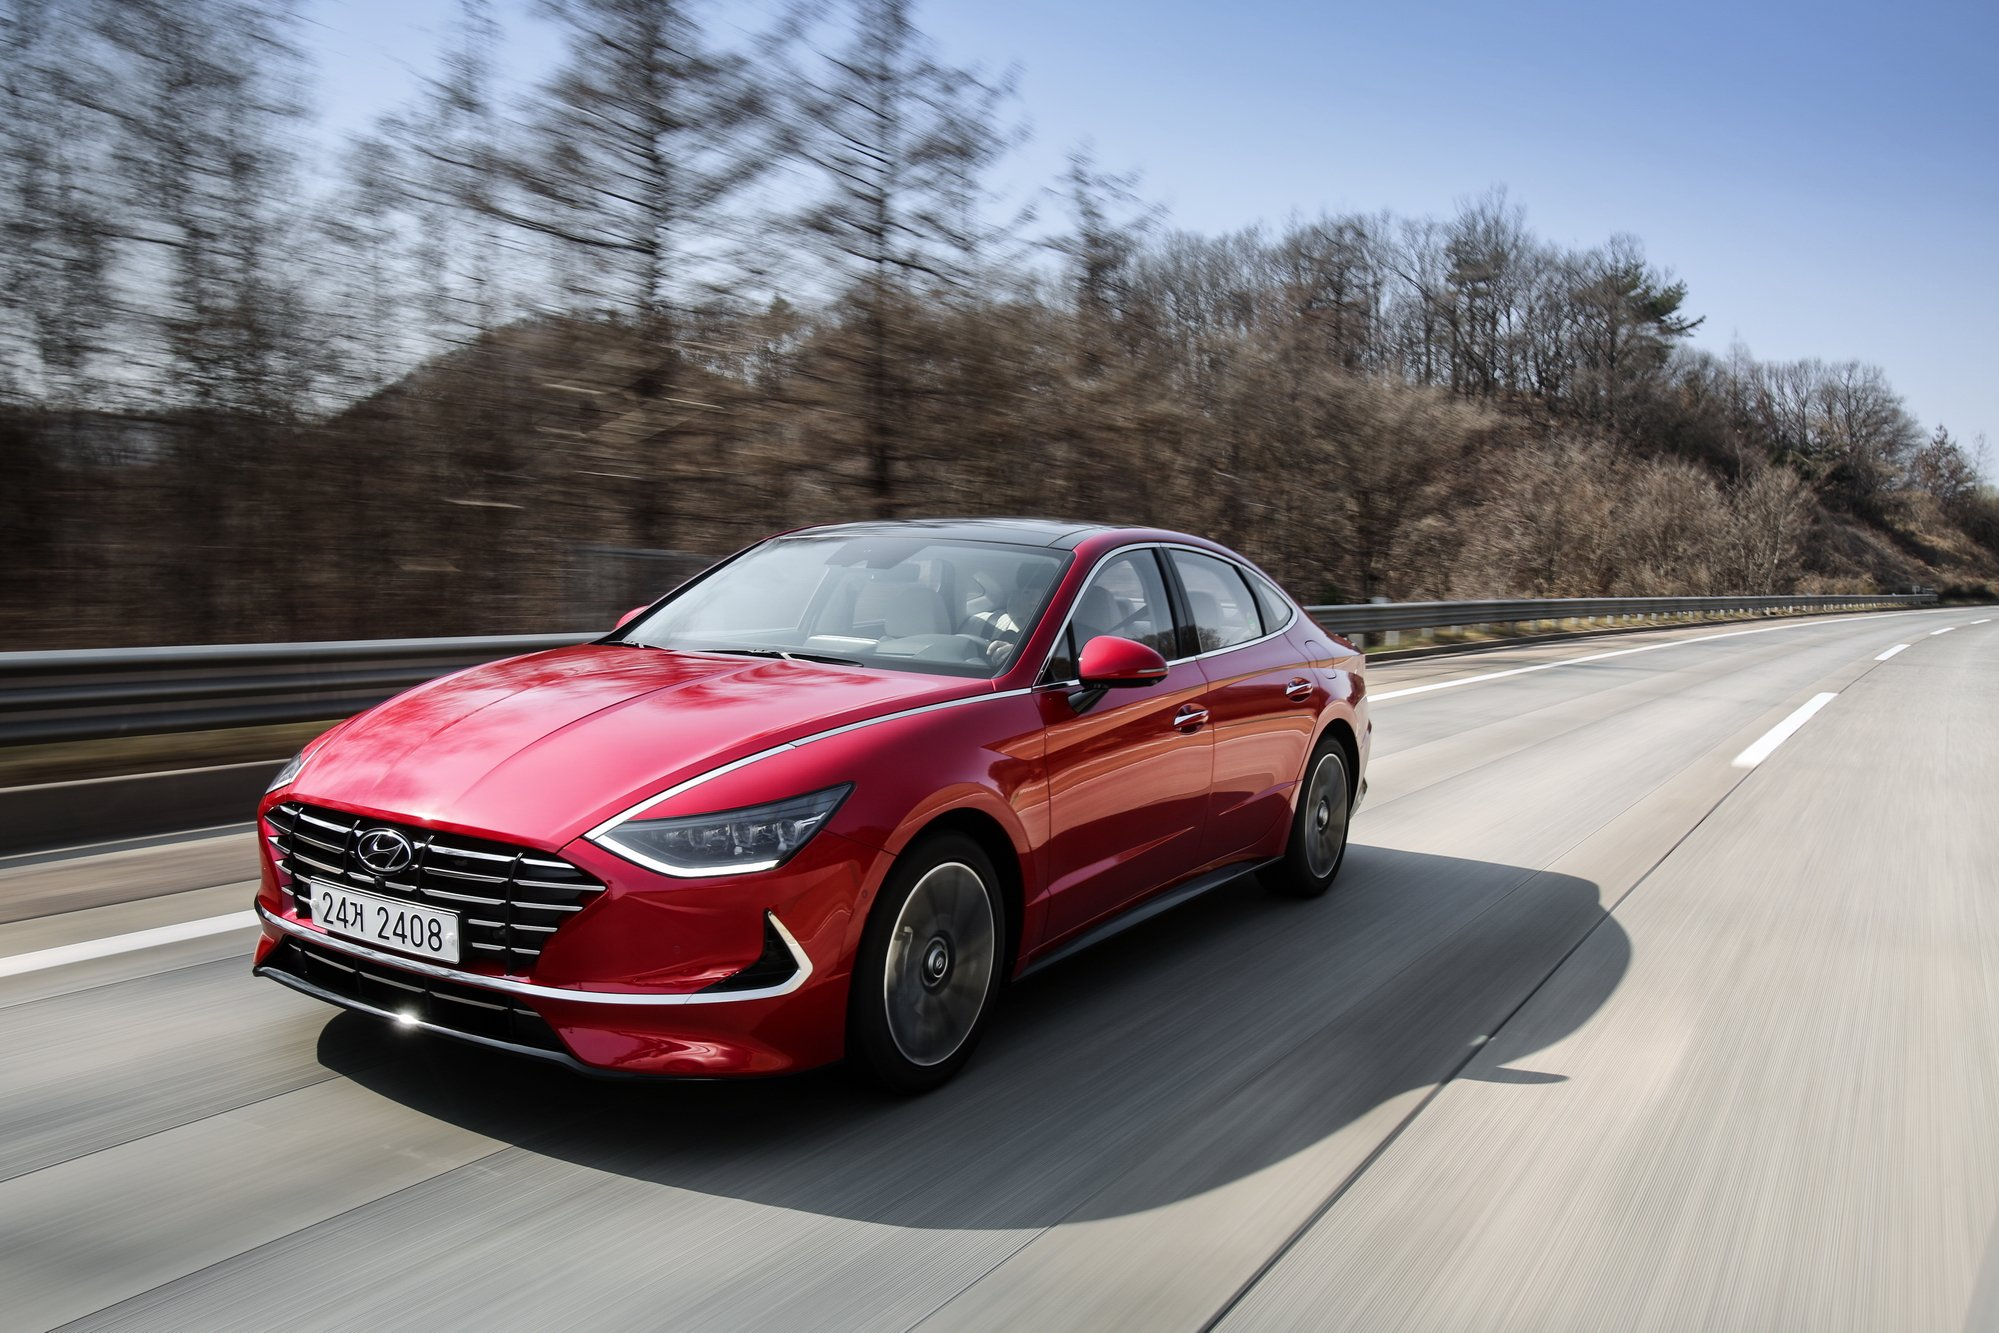 2020 Hyundai Sonata Review 1